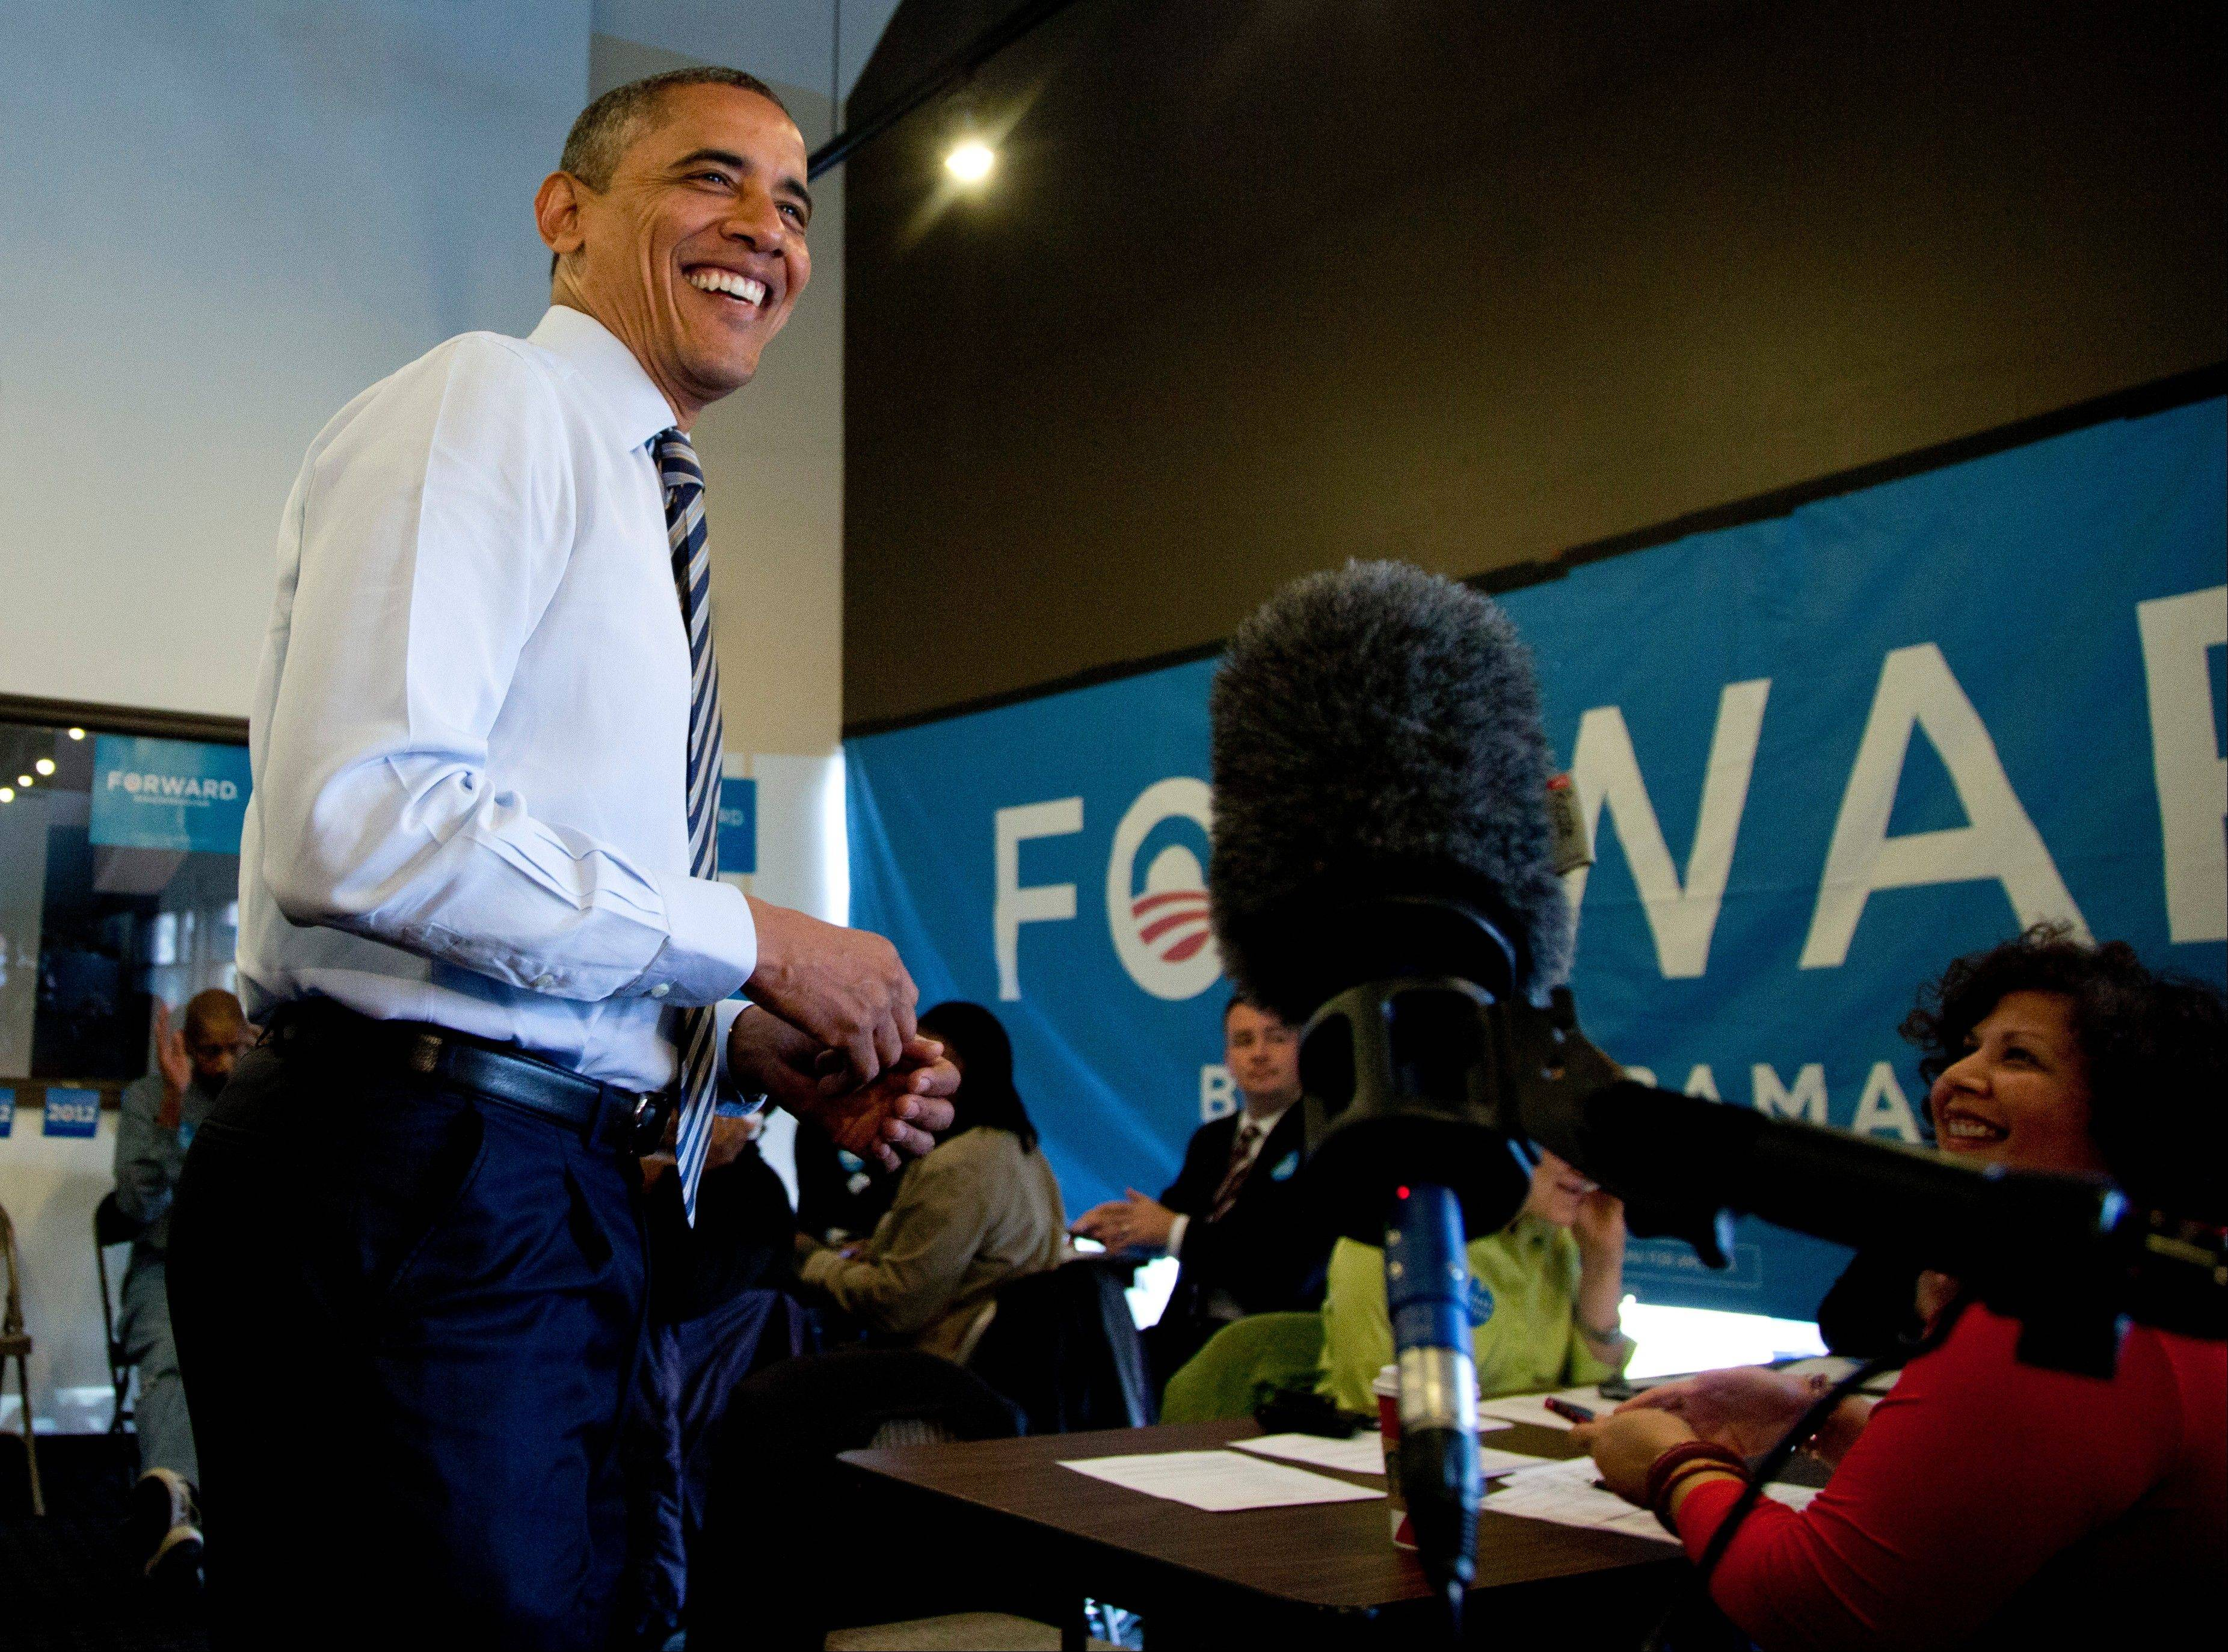 President Barack Obama speaks to media as he visits a campaign office the morning of the 2012 election, Tuesday, Nov. 6, 2012, in Chicago.